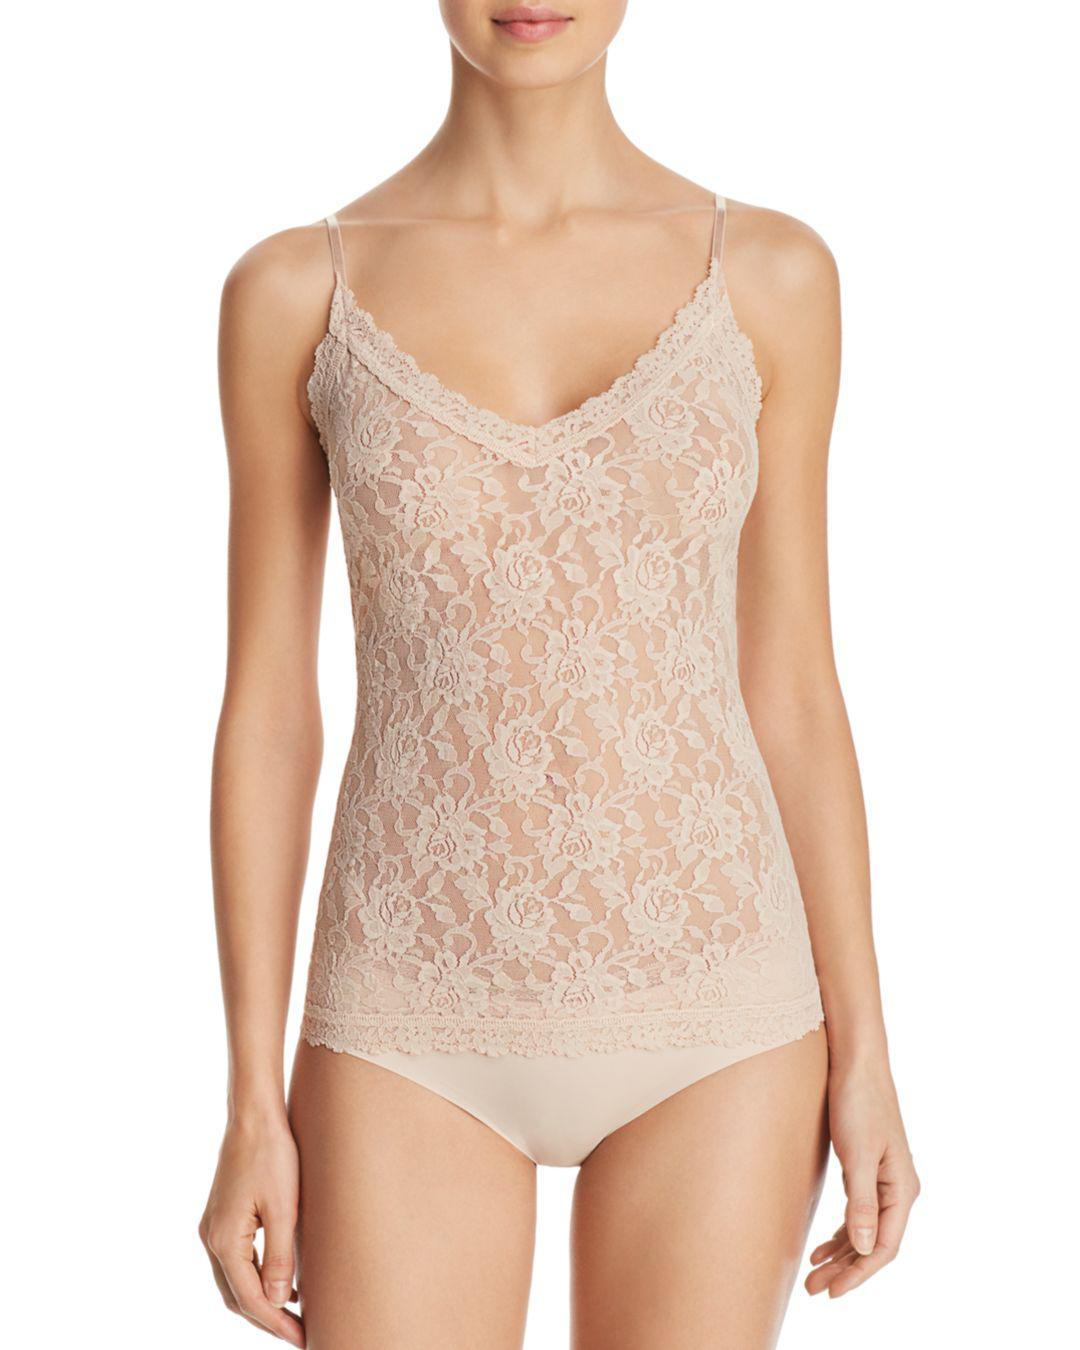 b9bd3489e7418 Hanky Panky Signature Lace V-neck Cami in Natural - Lyst